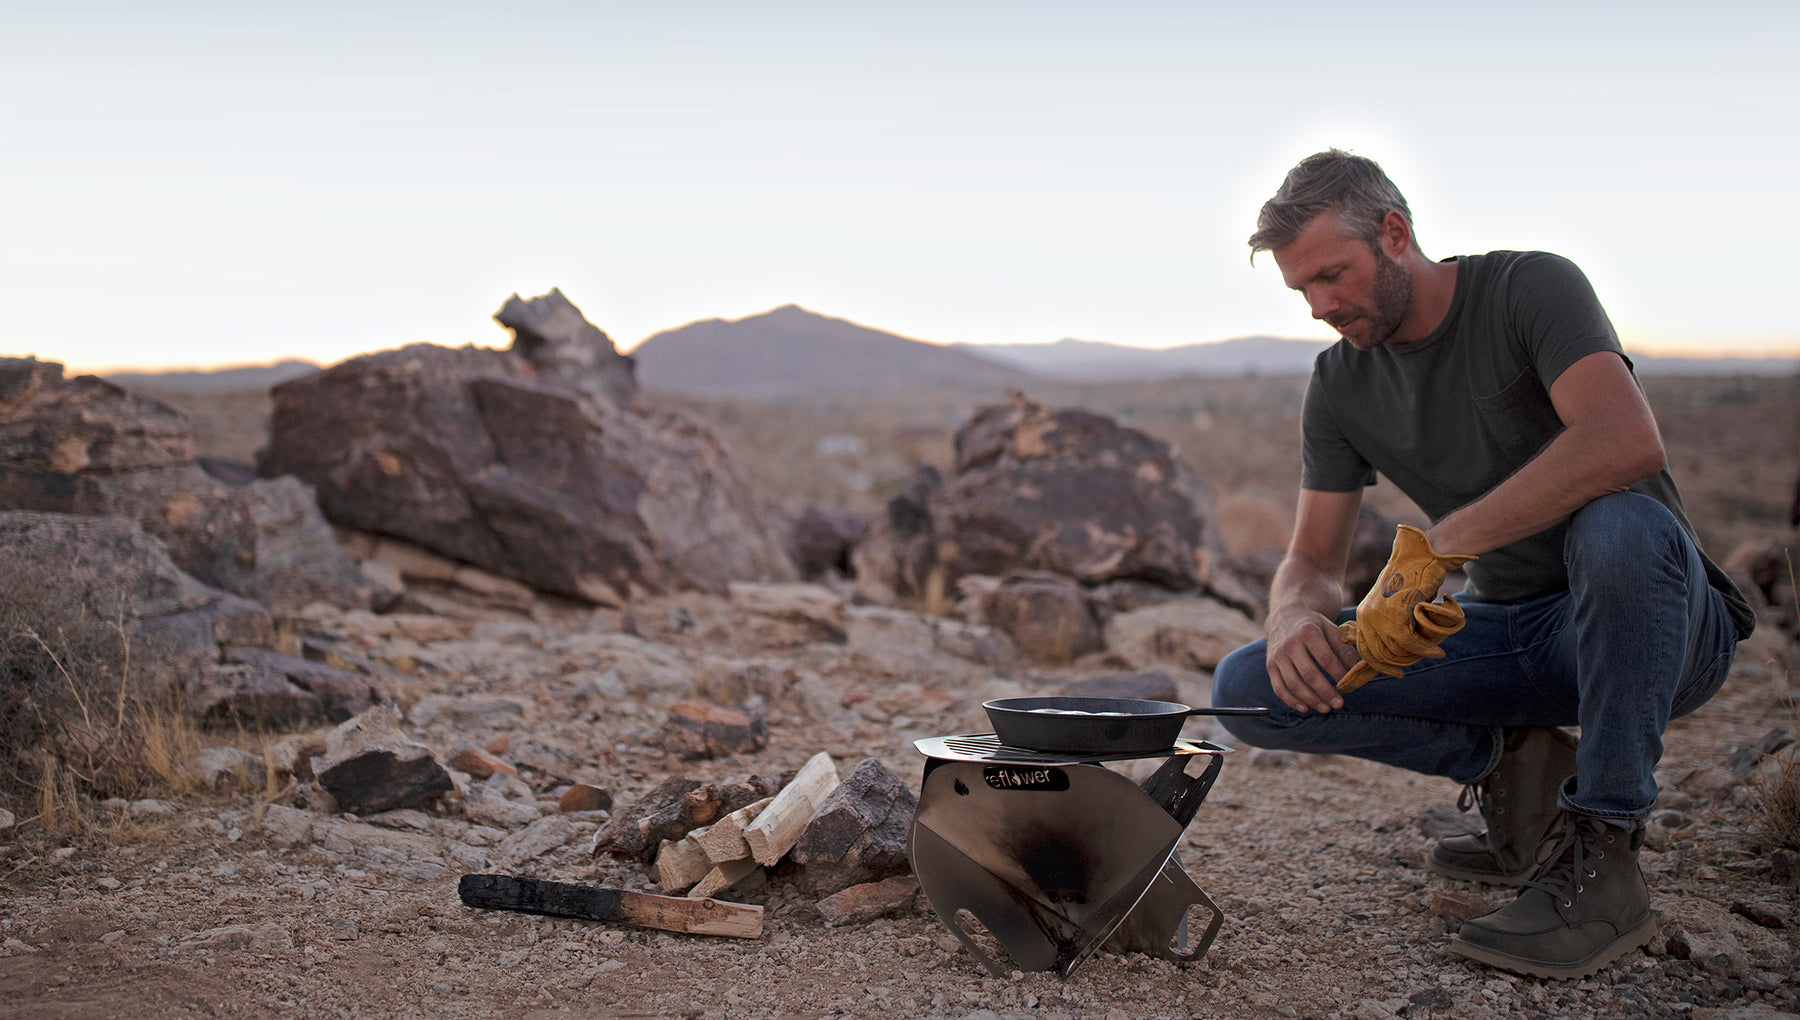 Designer David Grisham and his Fireflower Spark portable fire pit